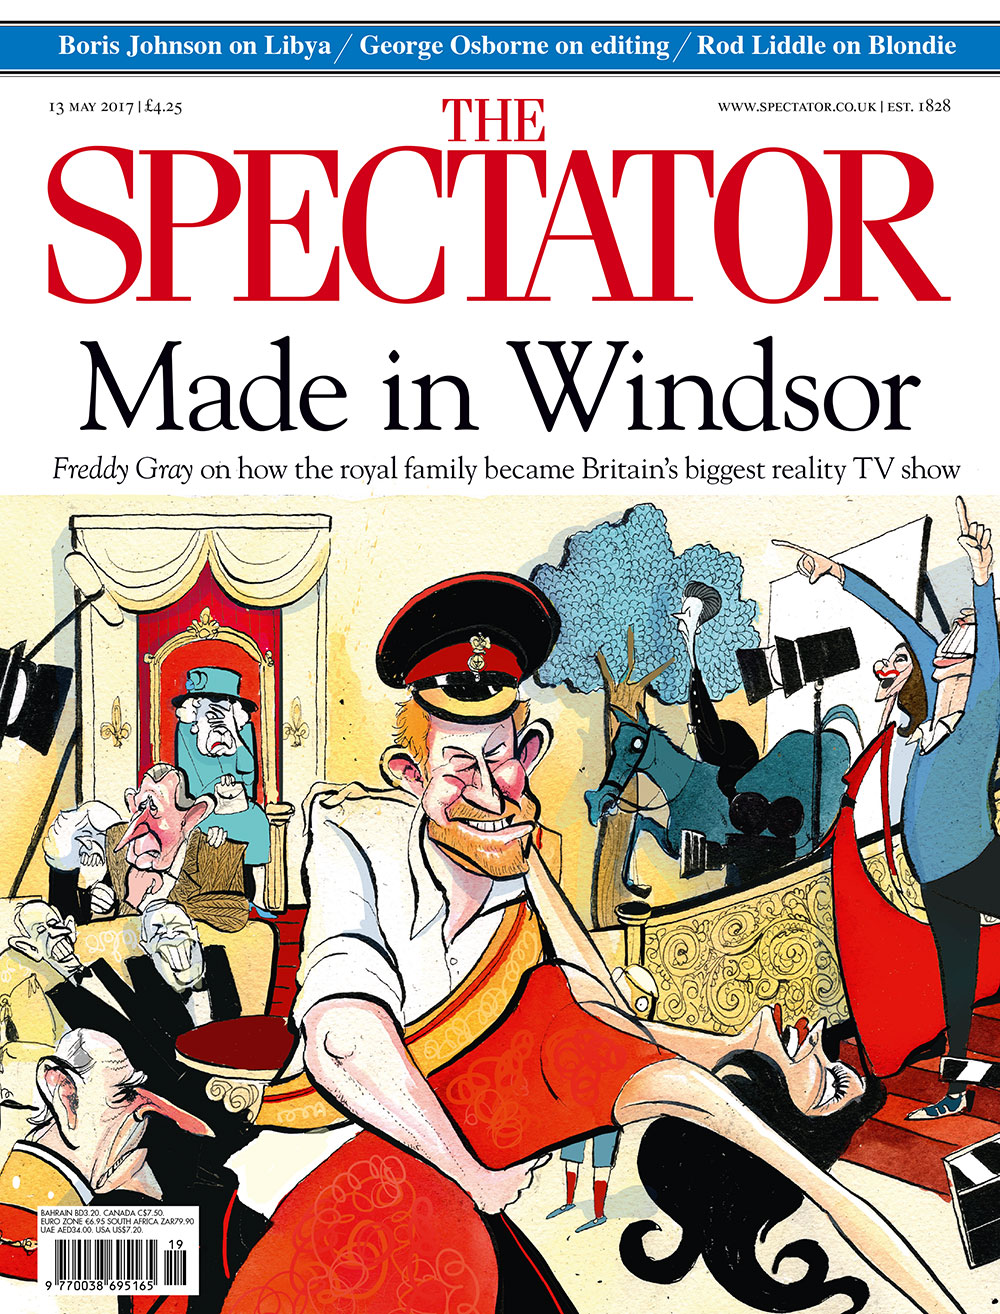 Issue 13 May 2017 The Spectator